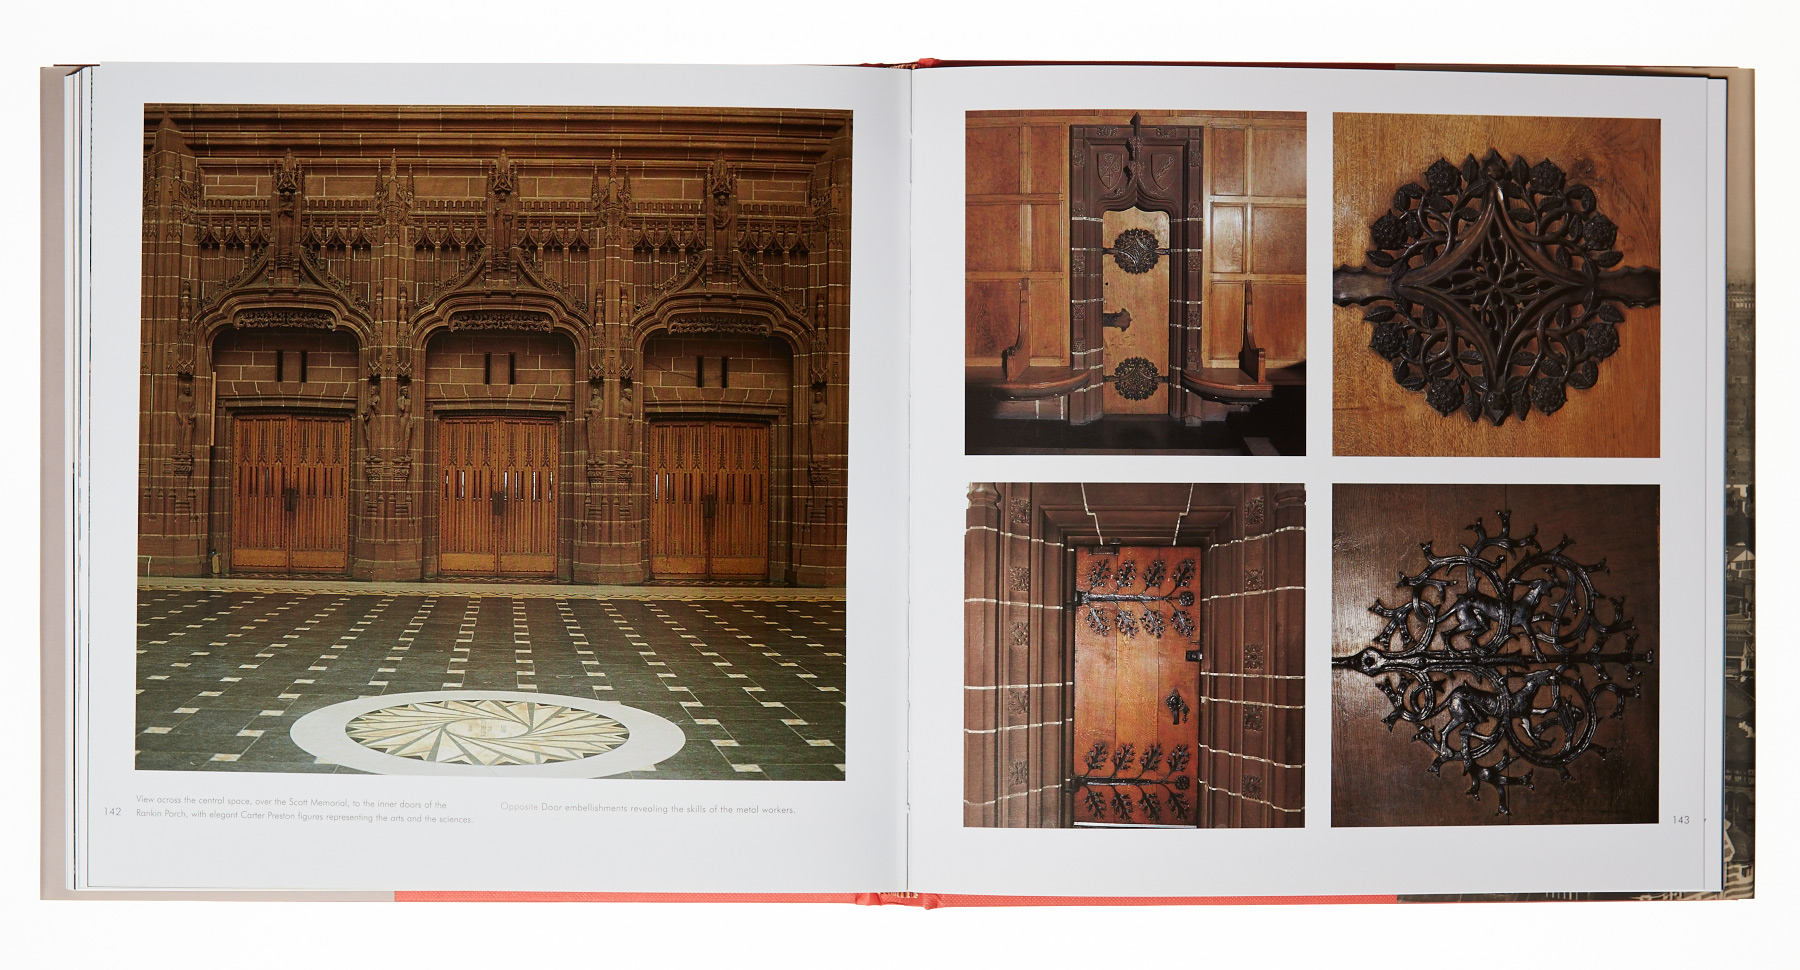 liverpool-cathedral-book-page-142.jpg